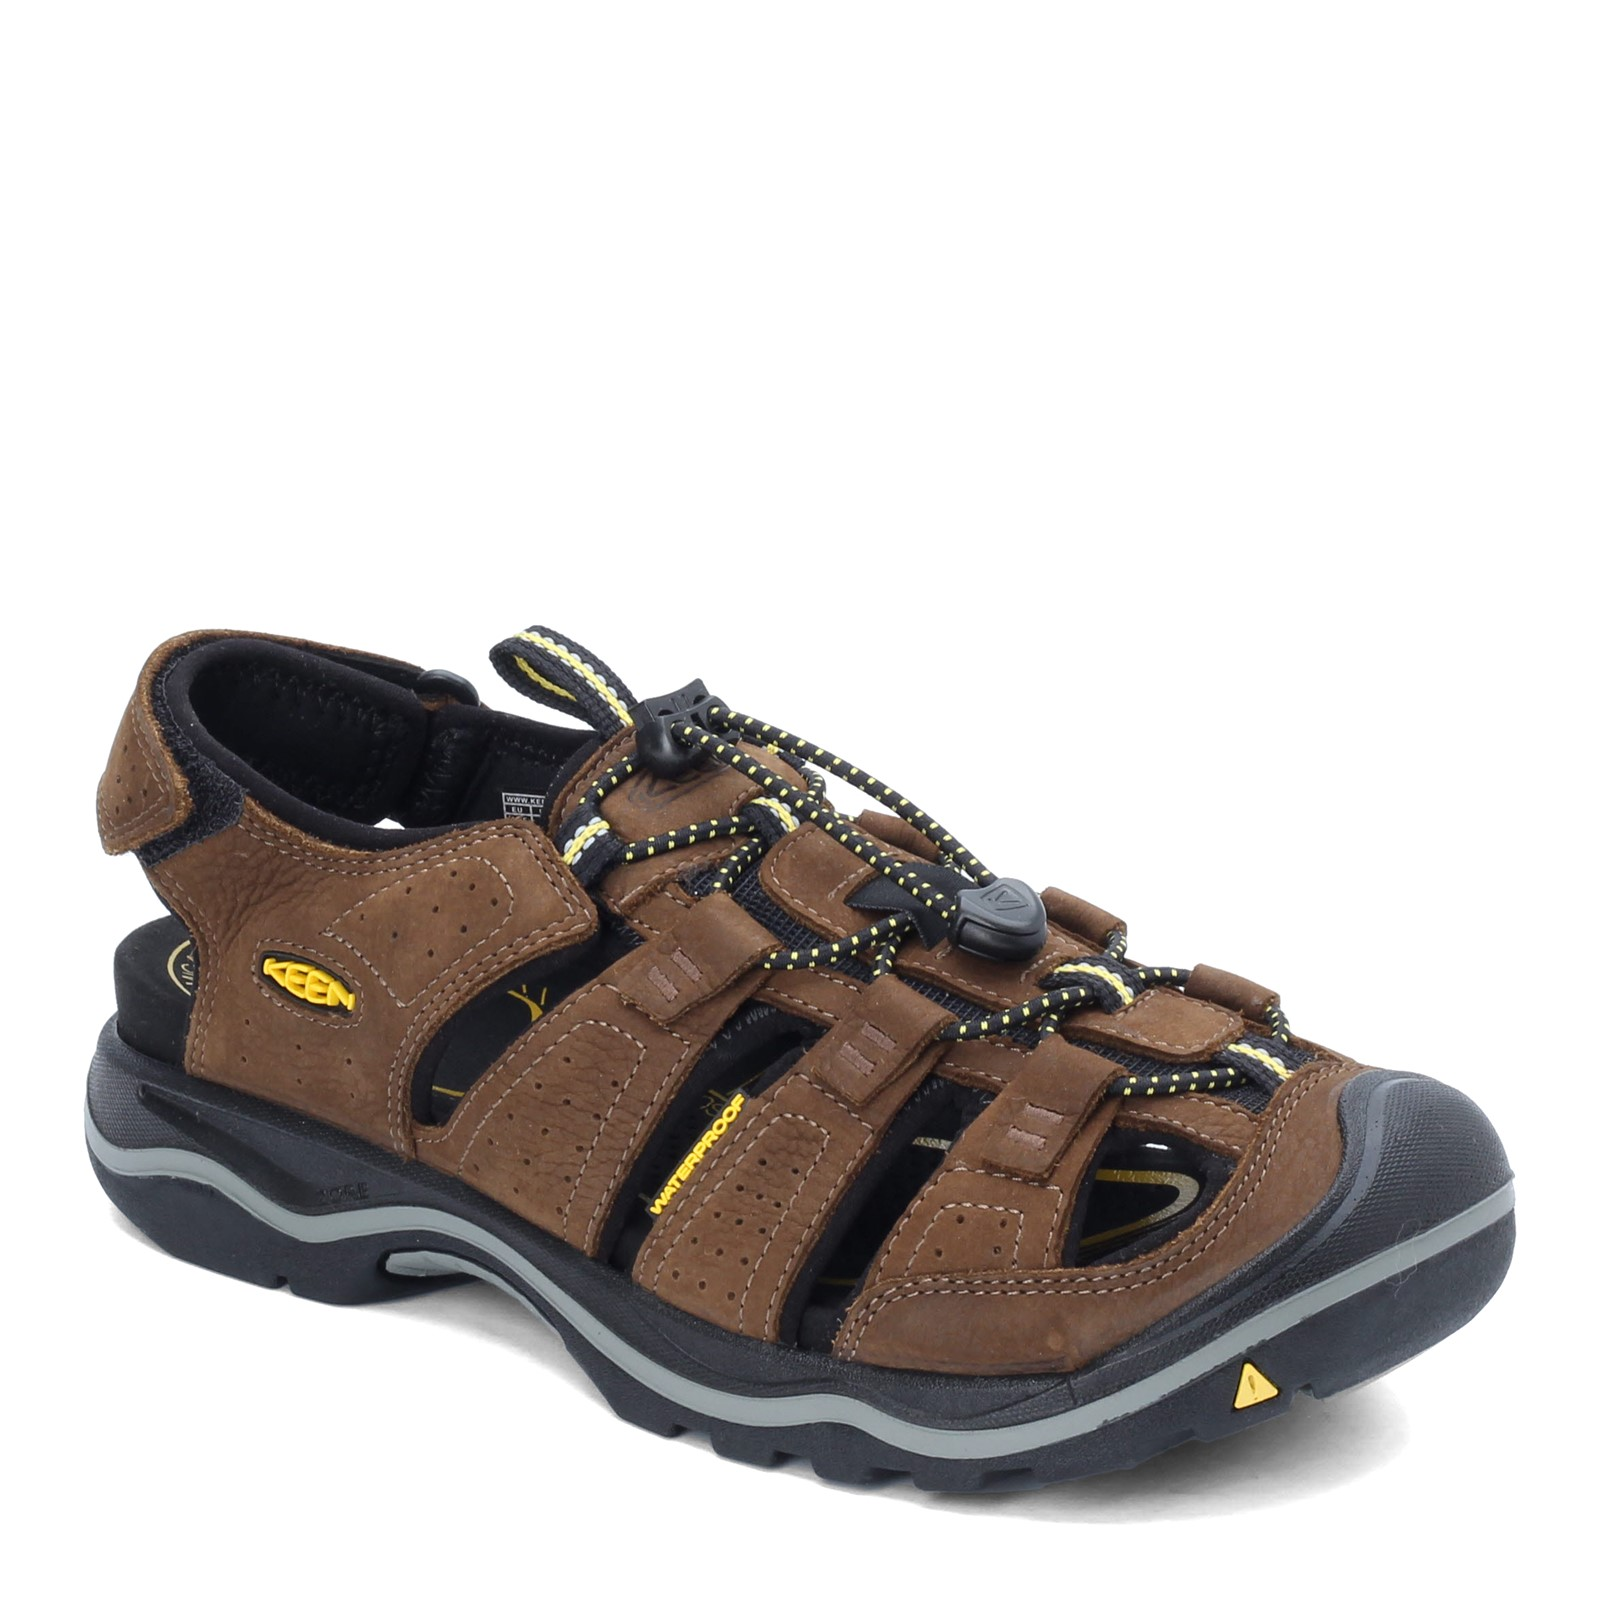 Men's Keen, Rialto Sandals